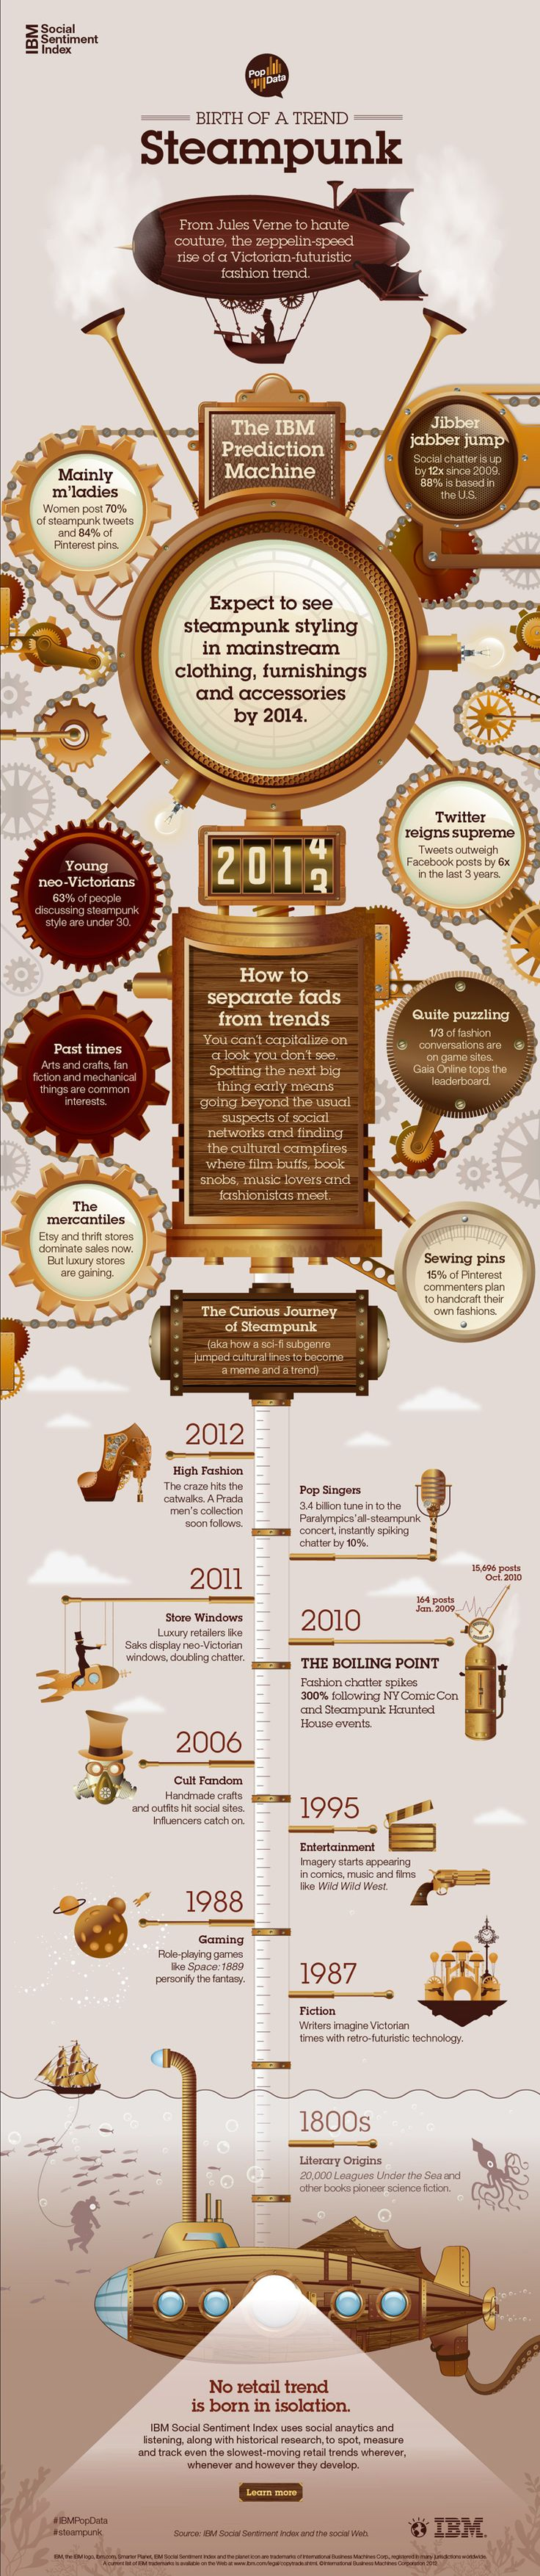 IBM brainiacs predict steampunk success